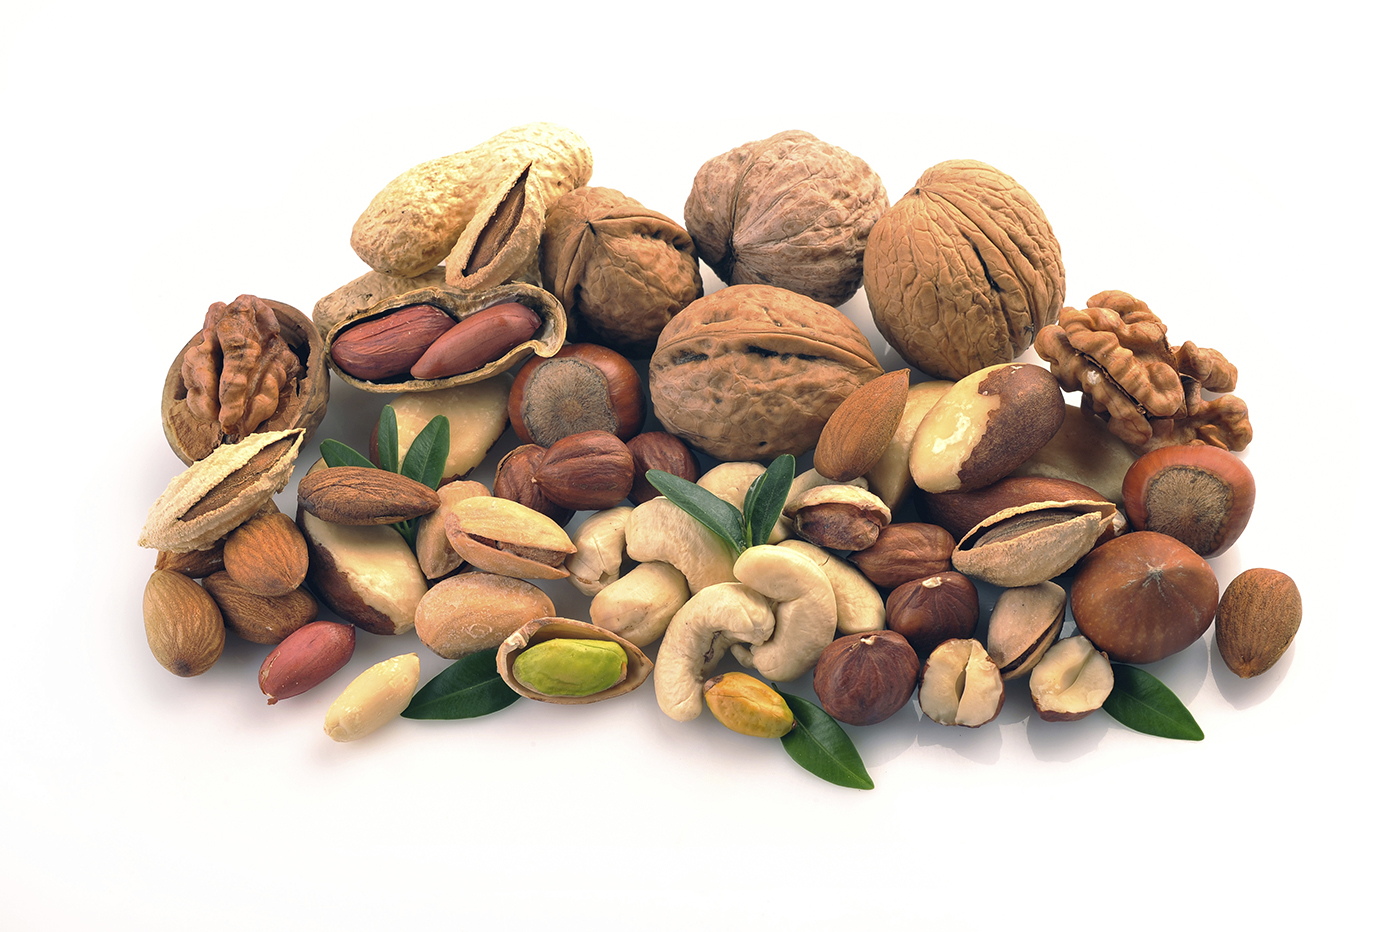 You know that nuts make a great snack. Choosing the right ones may help add years to your life. Here are the five best nuts you can eat.